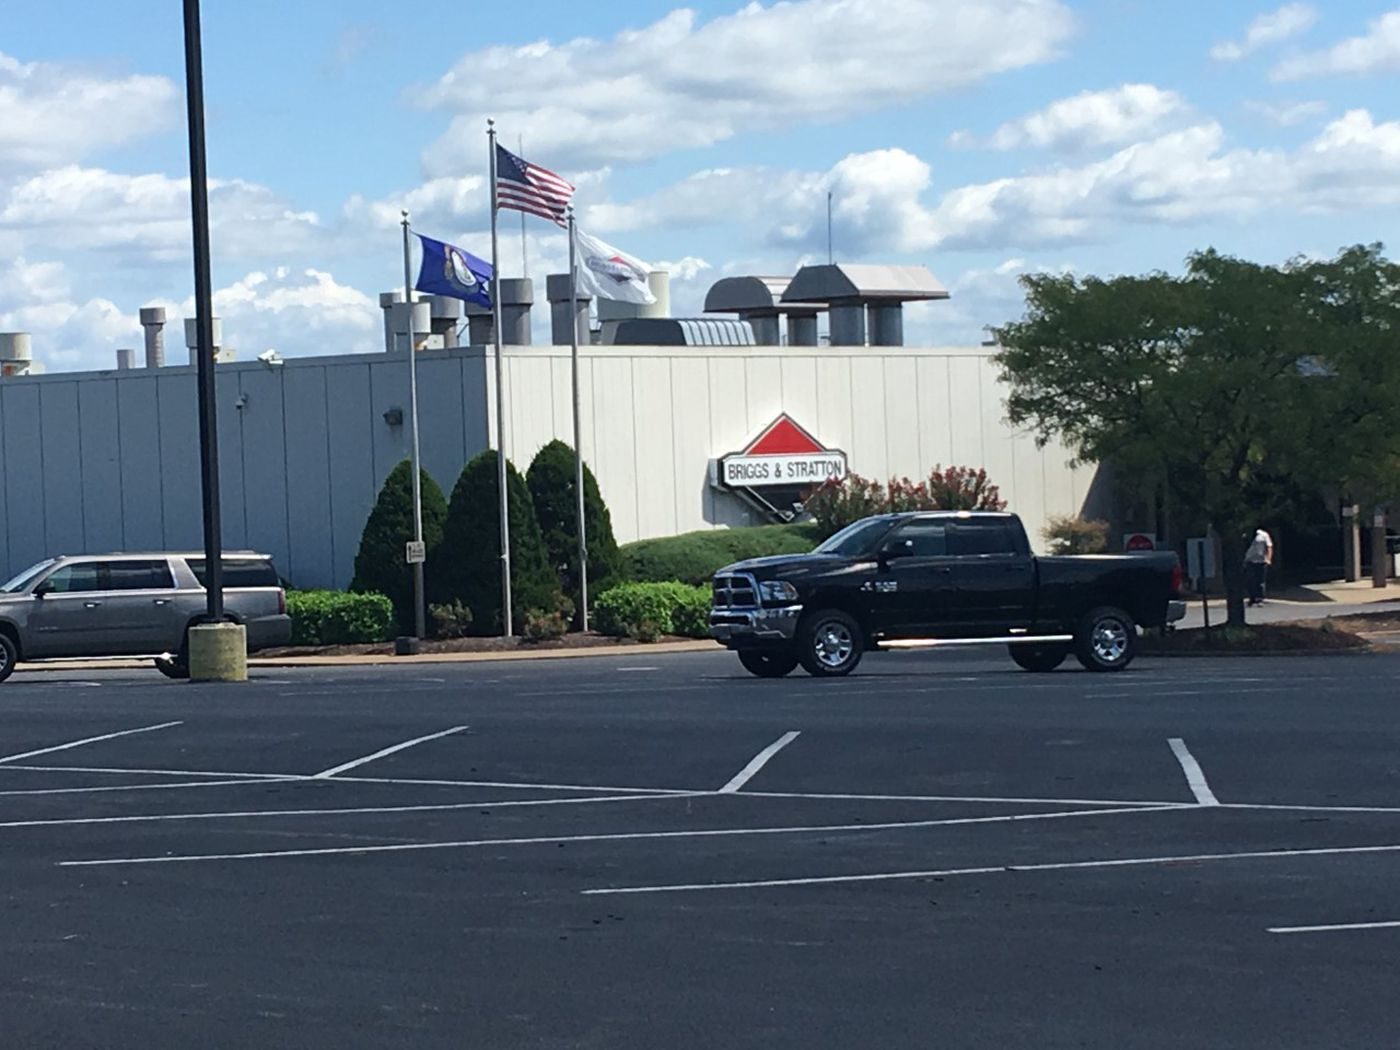 Briggs and Stratton facility to close in Murray, Ky